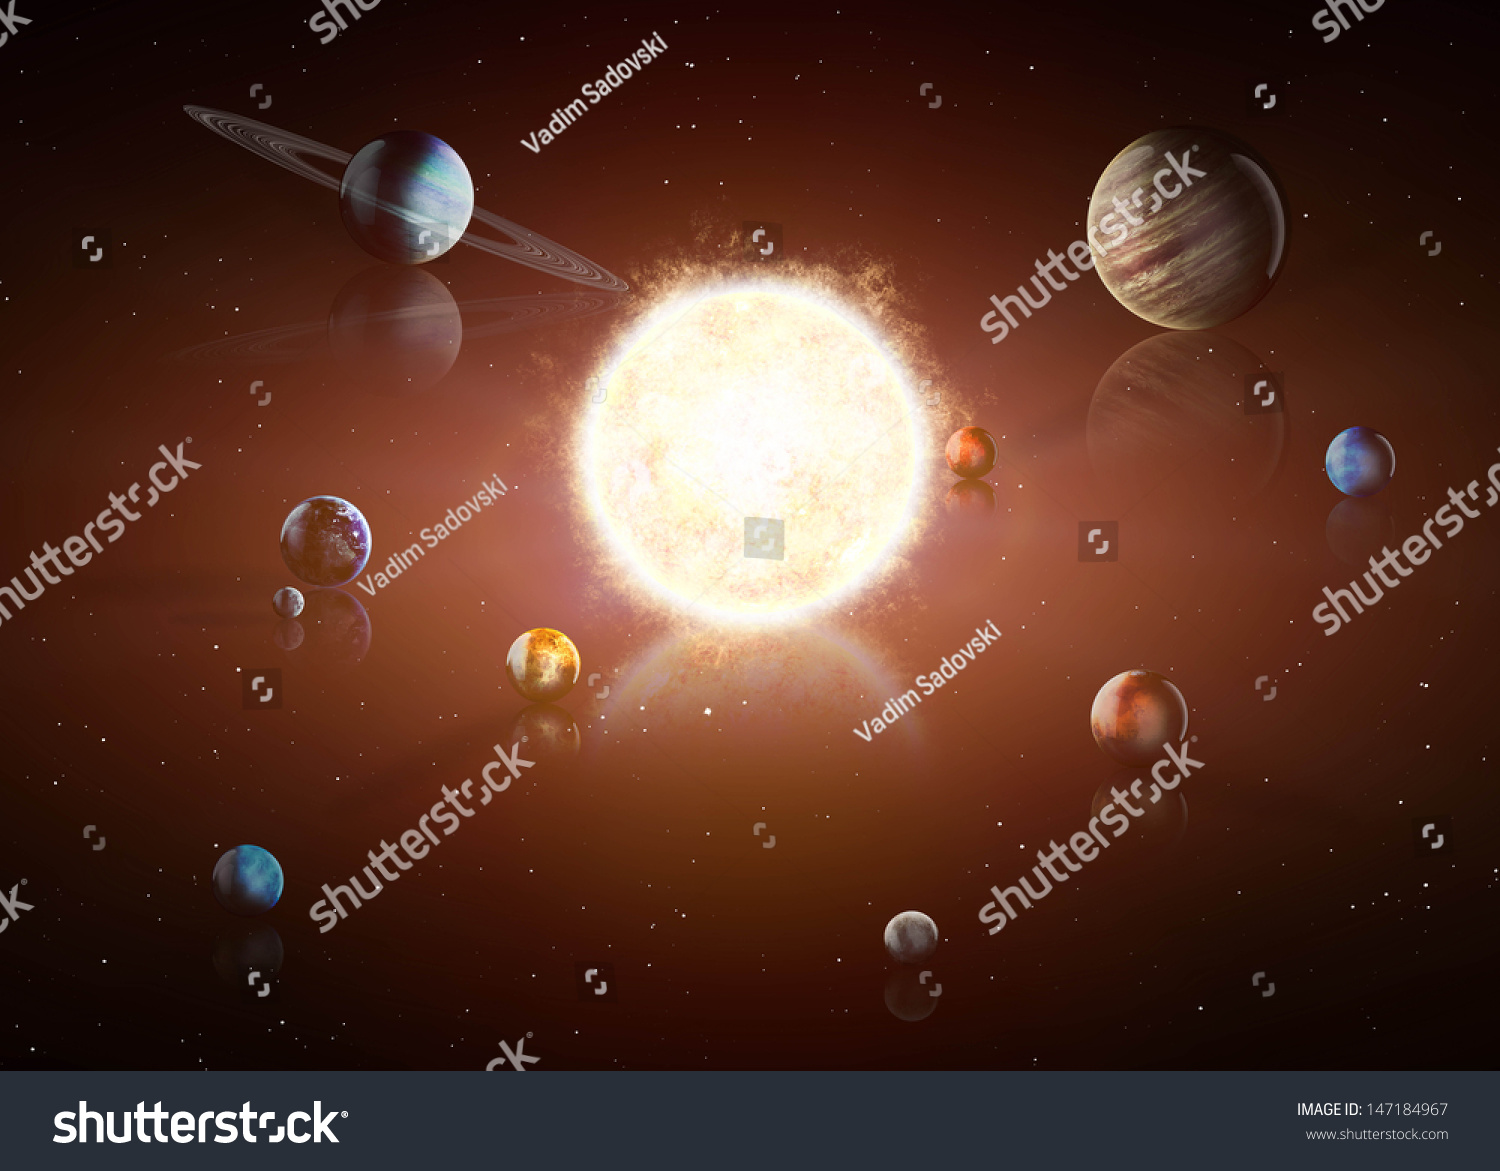 Illustration Of Solar System Showing Planets Around Sun ...